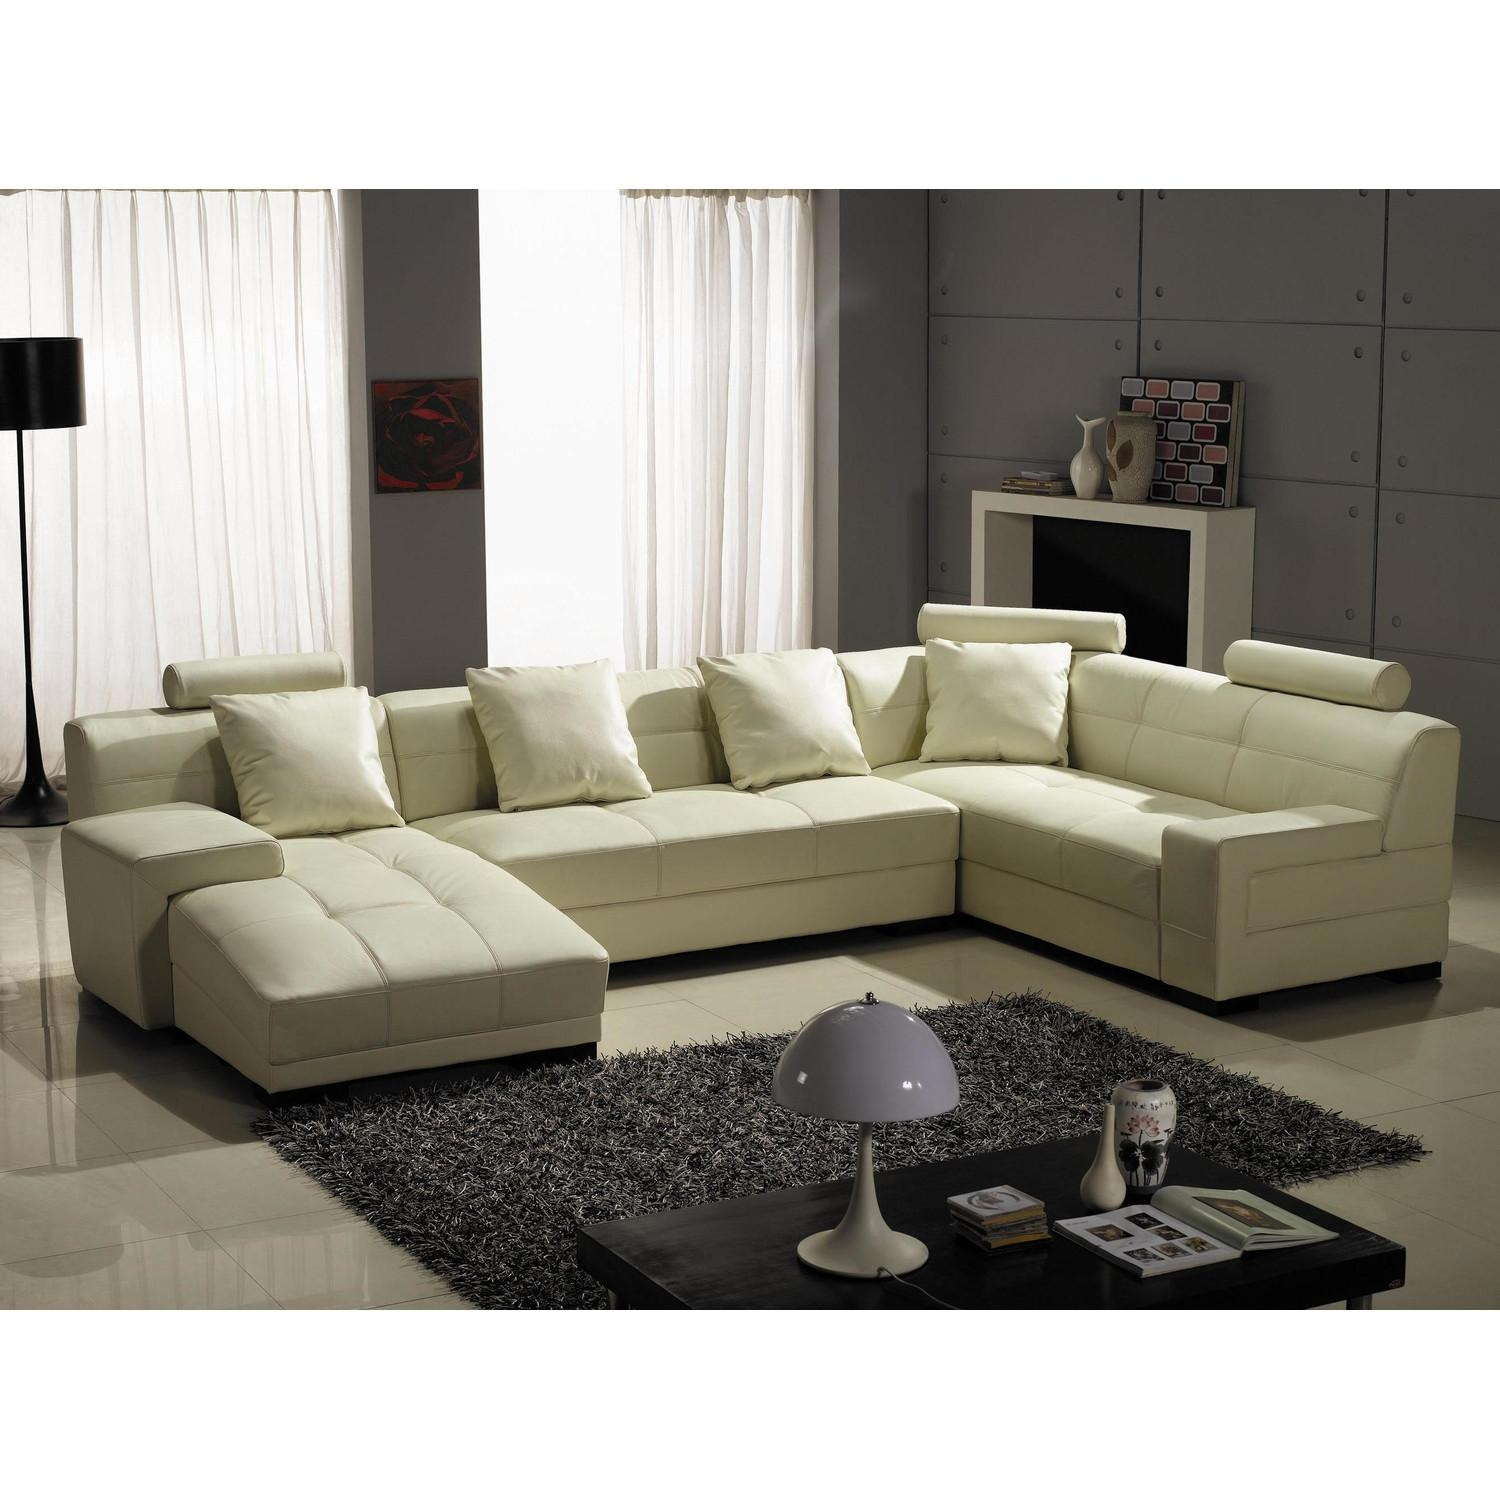 Interior: Admirable Oversized Sectional Sofas With Oversized With Regard To Houston Sectional Sofa (View 6 of 20)